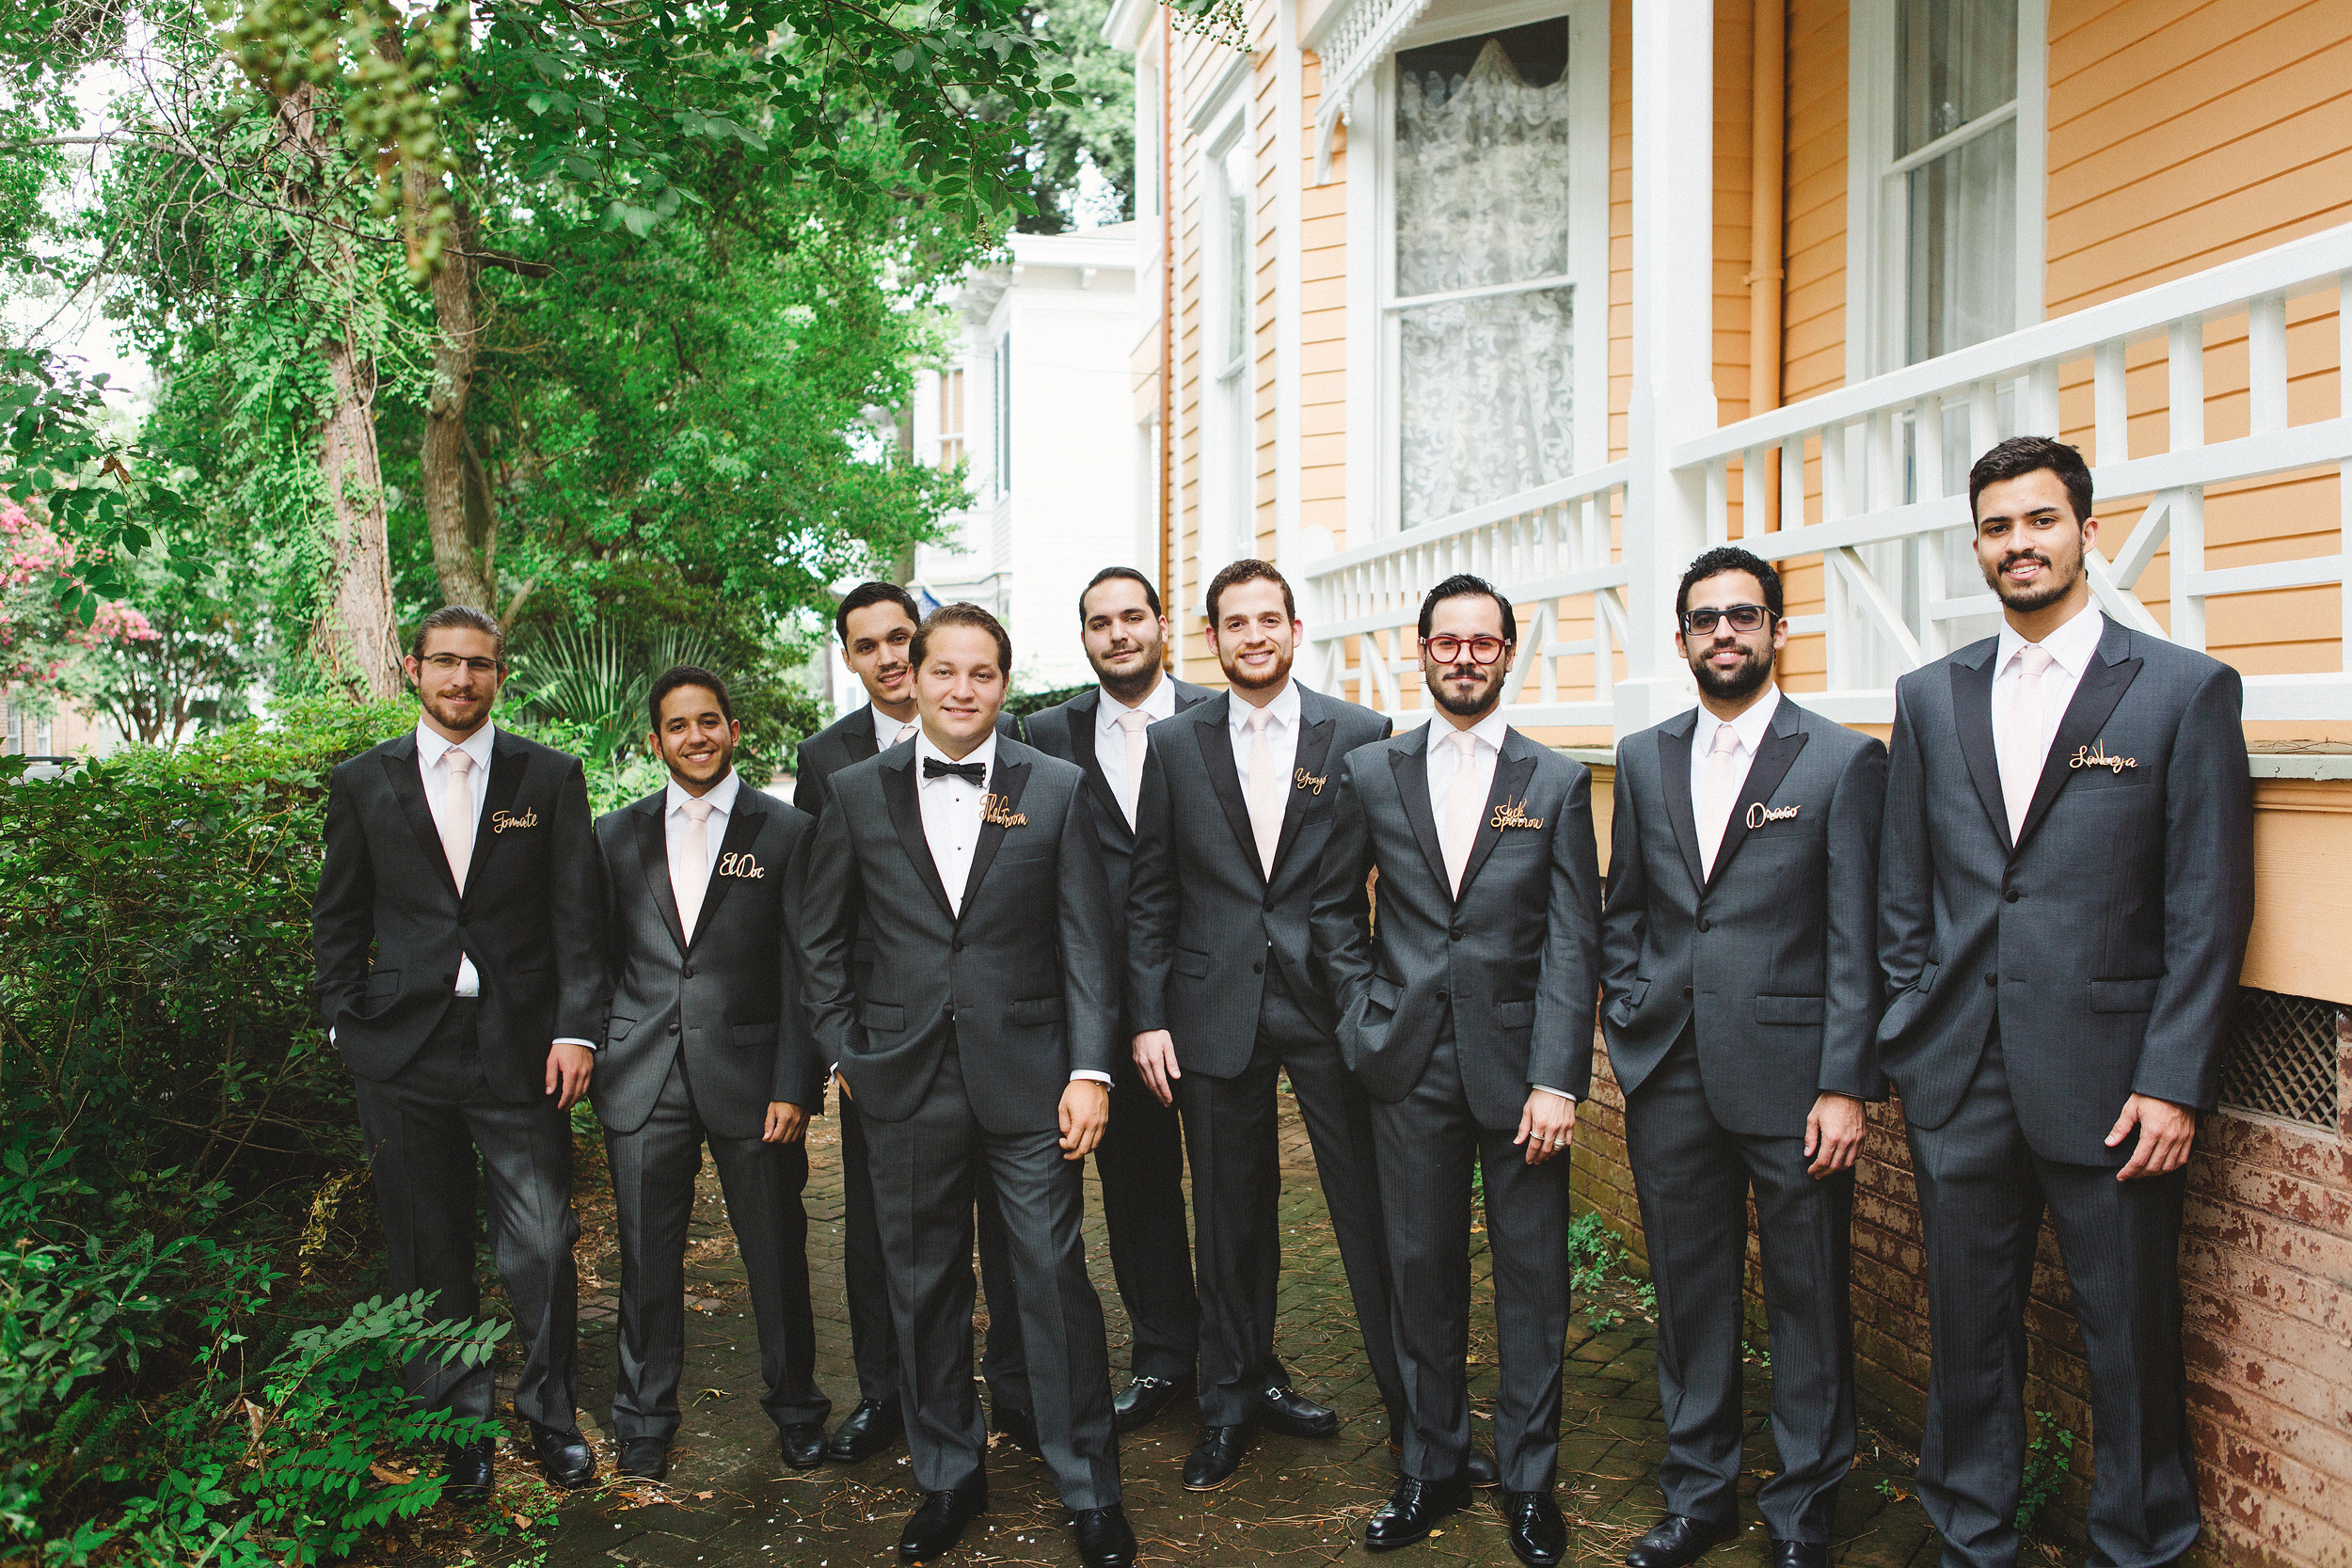 daniela-and-pedro-wedding-izzy-hudgins-photography-a-to-zinnias-whitfield-square-charles-h-morris-center-wedding-ivoyy-and-beau-bridal-boutique-dorie-hayley-paige-savannah-wedding-planner-savannah-bridal-boutique-savannah-weddings-10.jpg